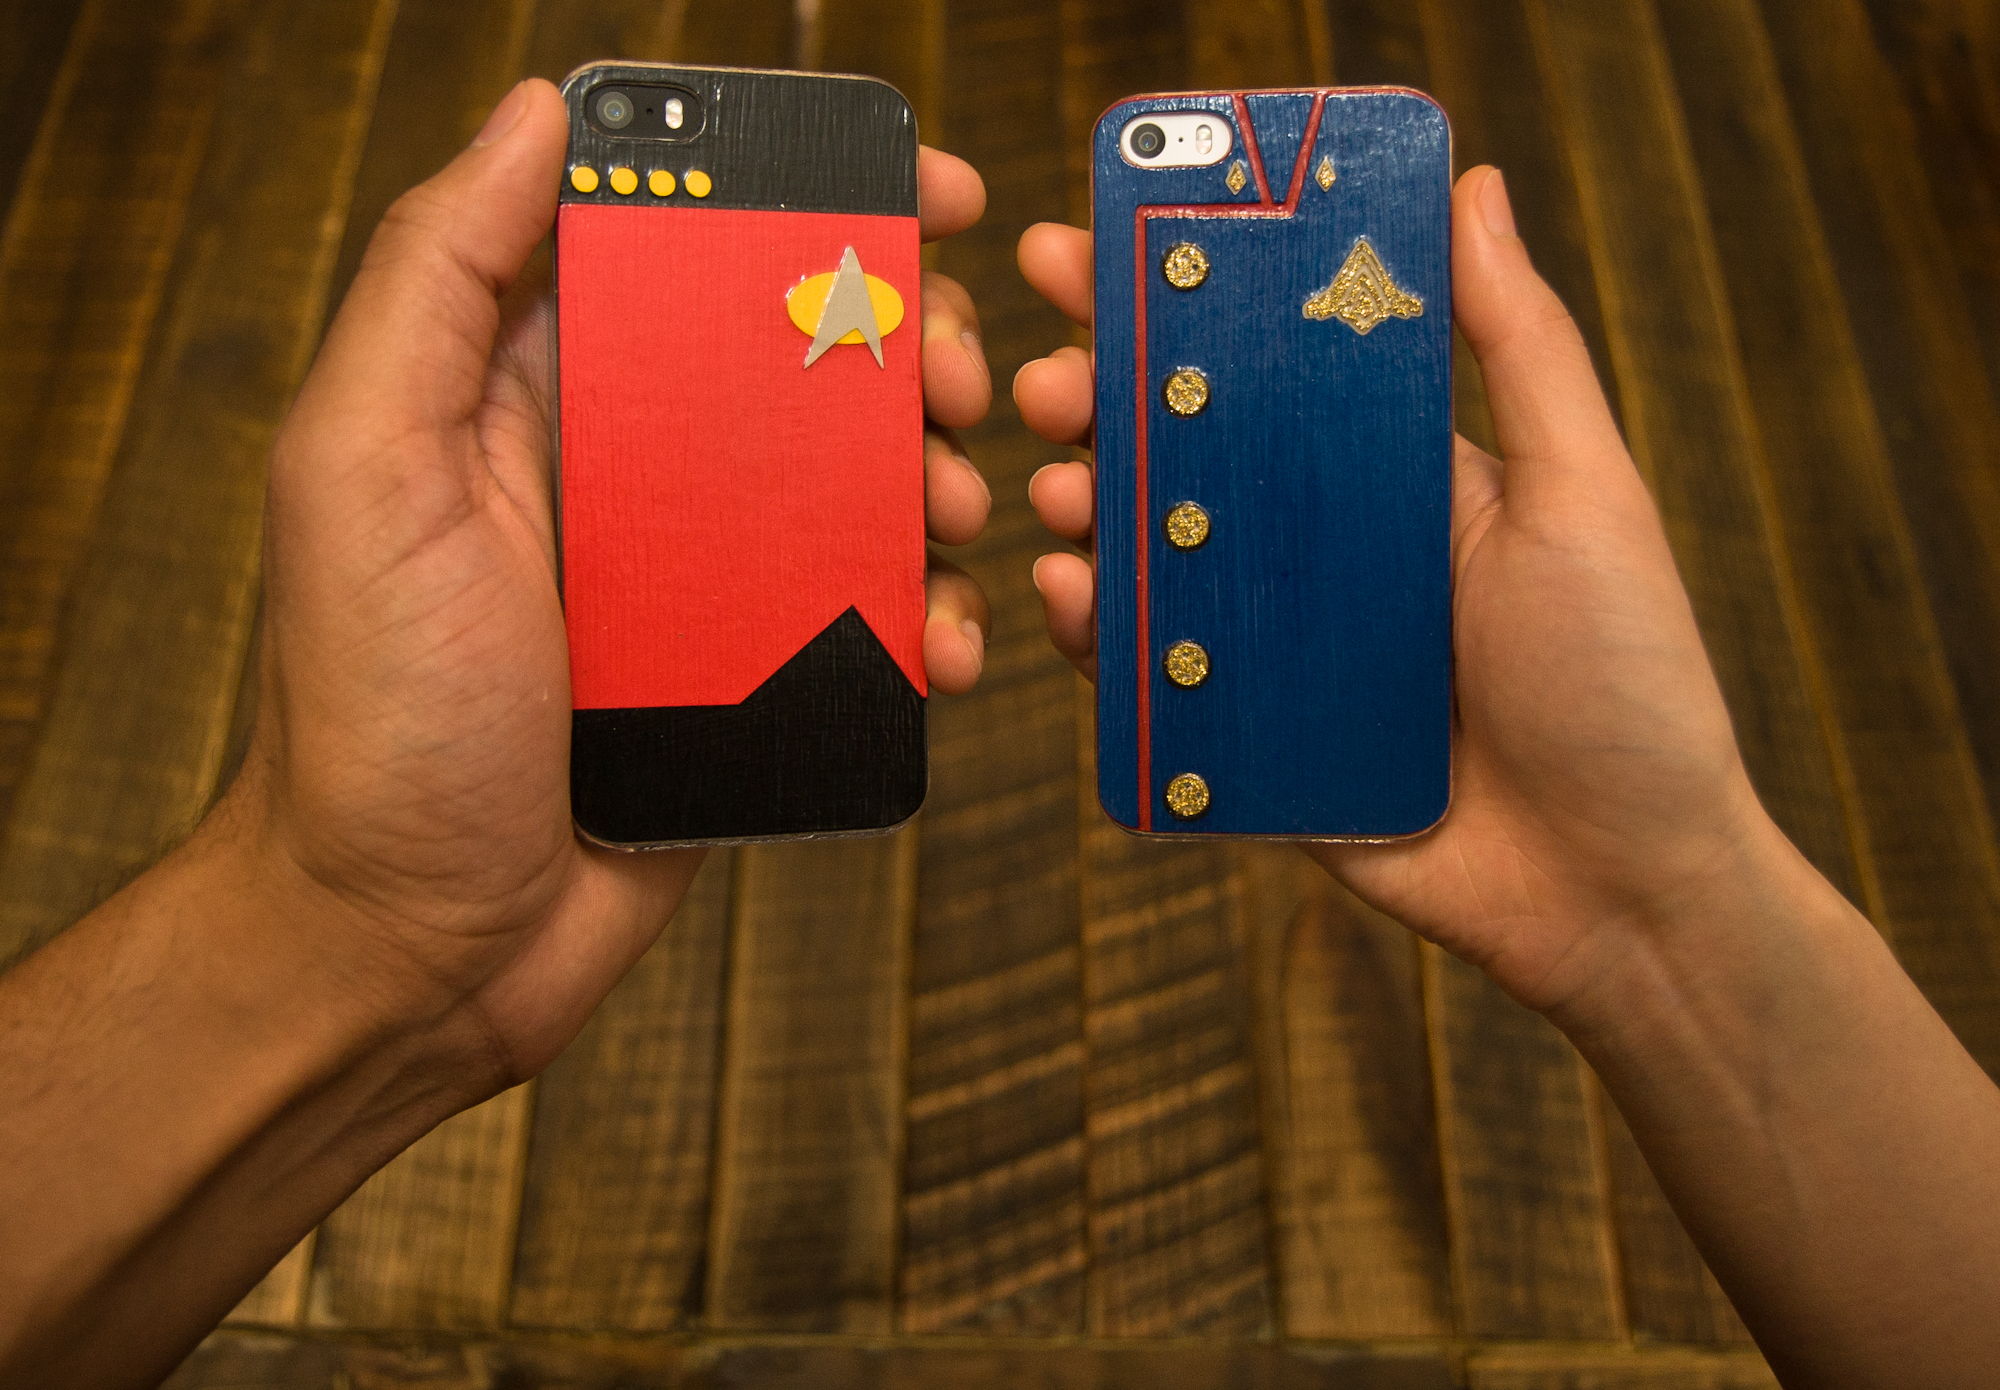 Our his and hers scifi iPhone cases.